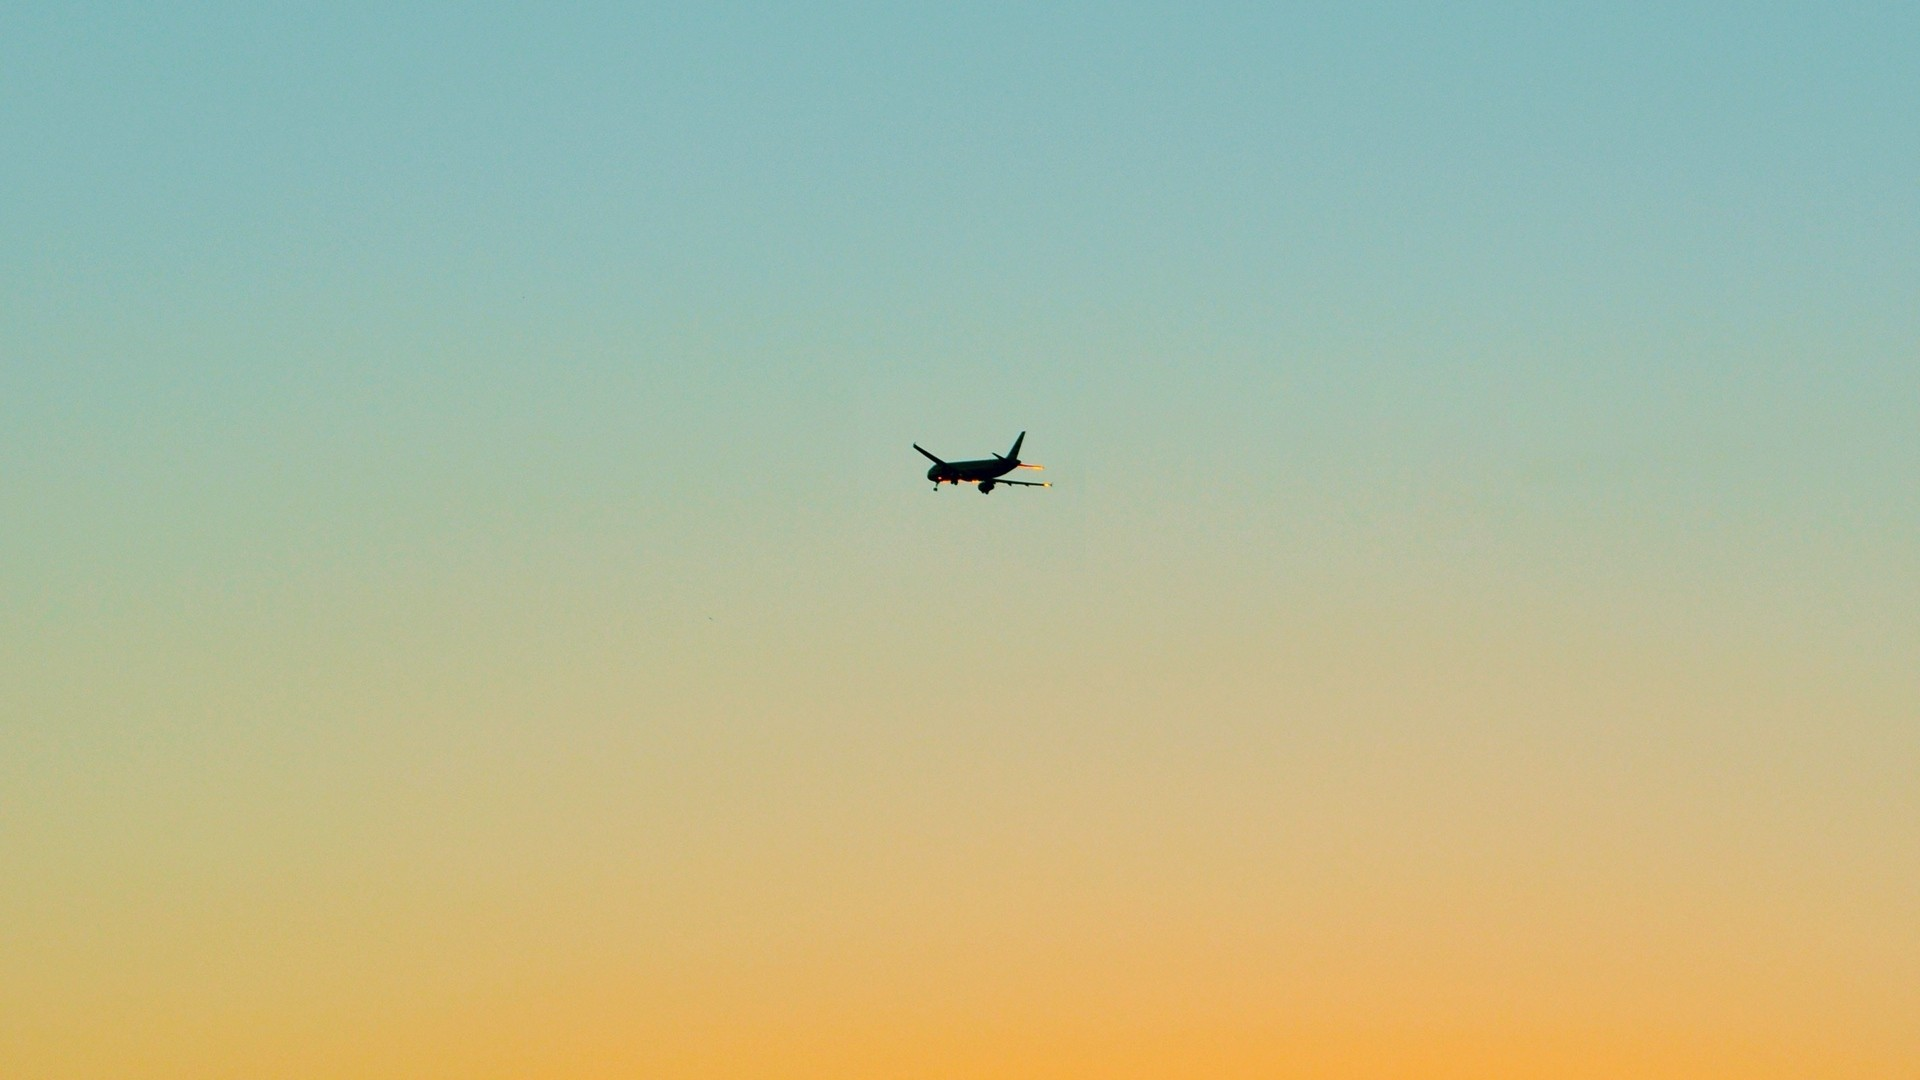 Airplane Minimalist wallpaper for desktop